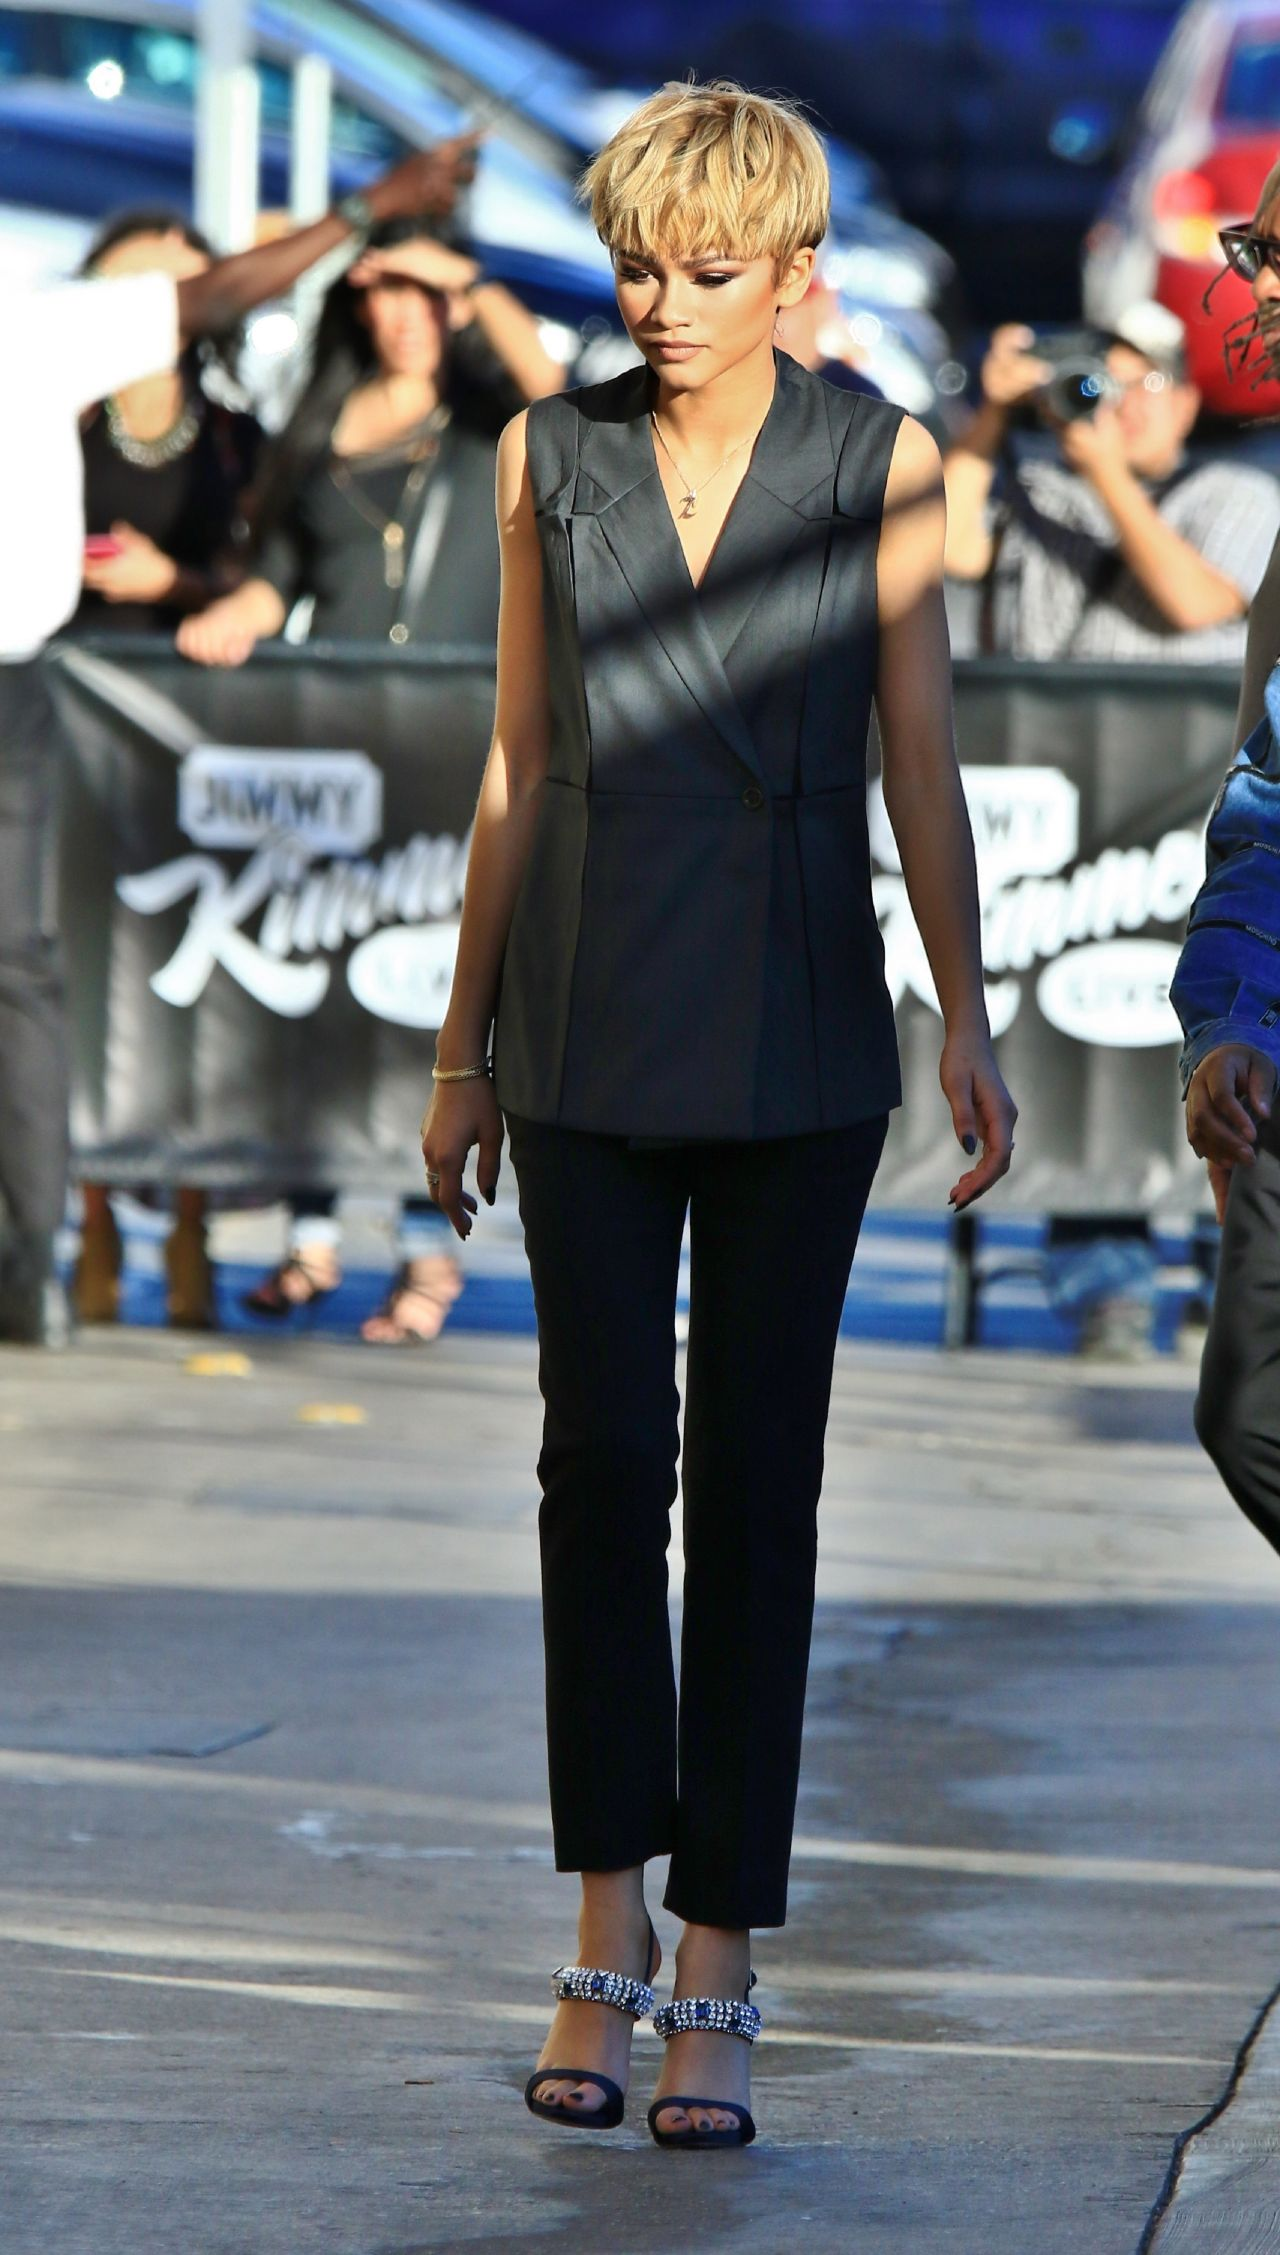 zendaya-coleman-arriving-to-appear-on-jimmy-kimmel-live-in-hollywood-2-10-2016-1